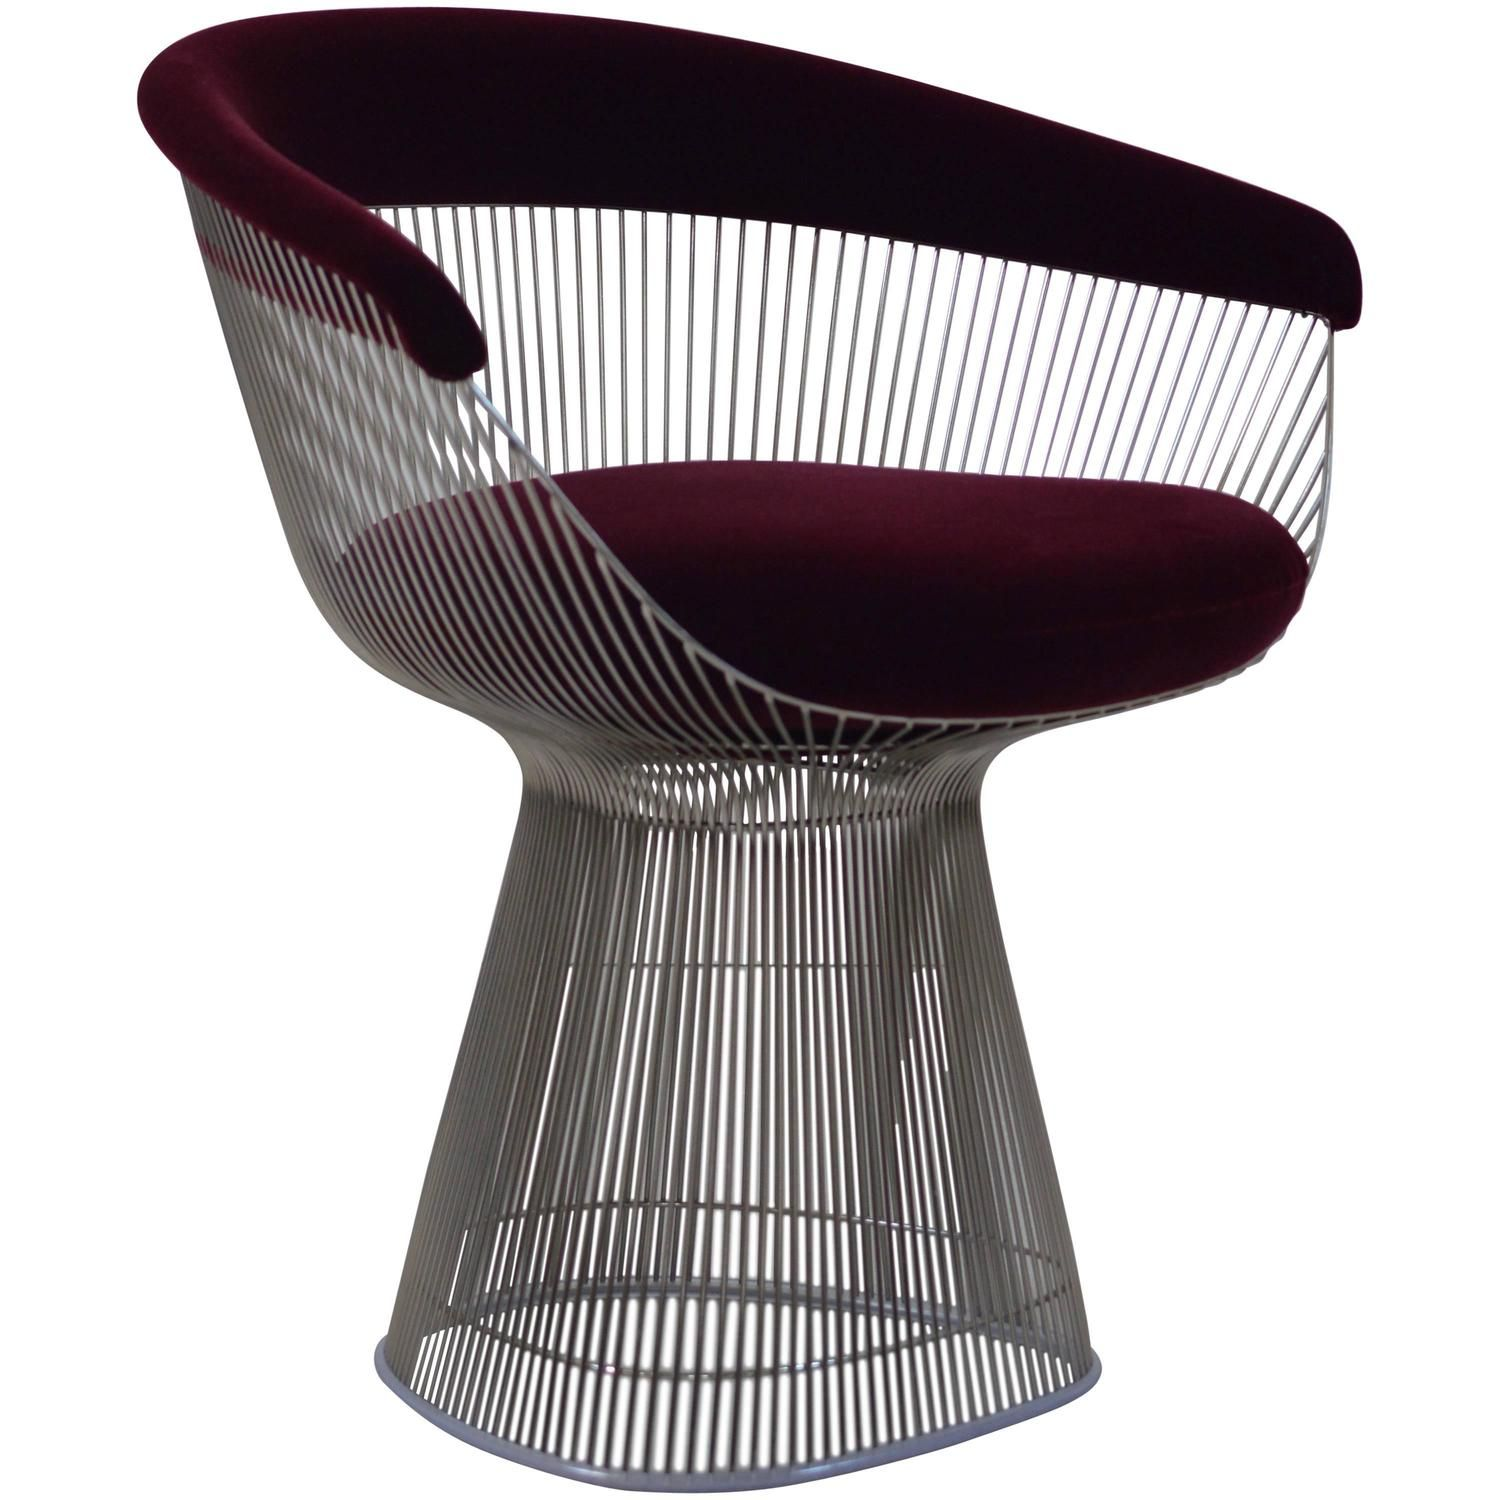 Amazing Platner Furniture. Burgundy Velvet Warren Platner Wire Chair For Knoll  Furniture I